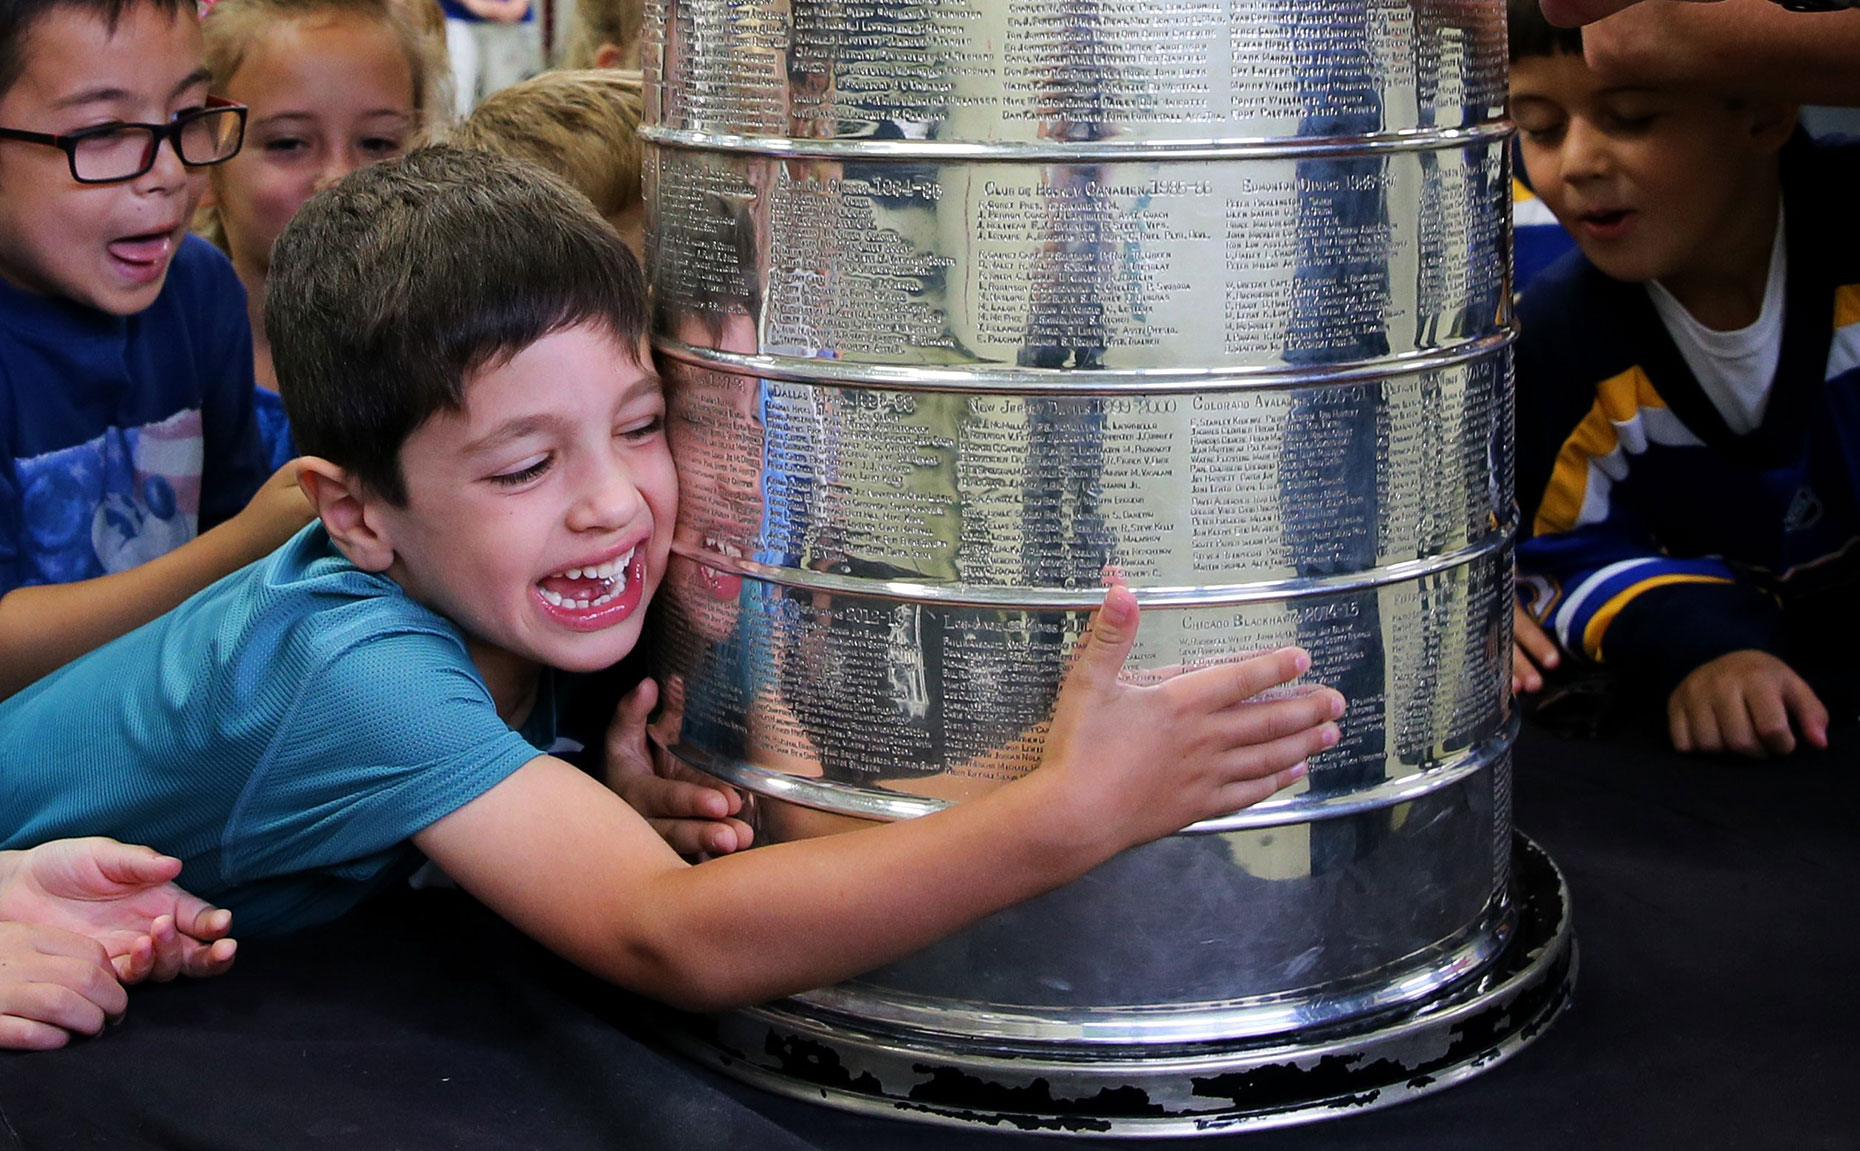 Hugging the Cup